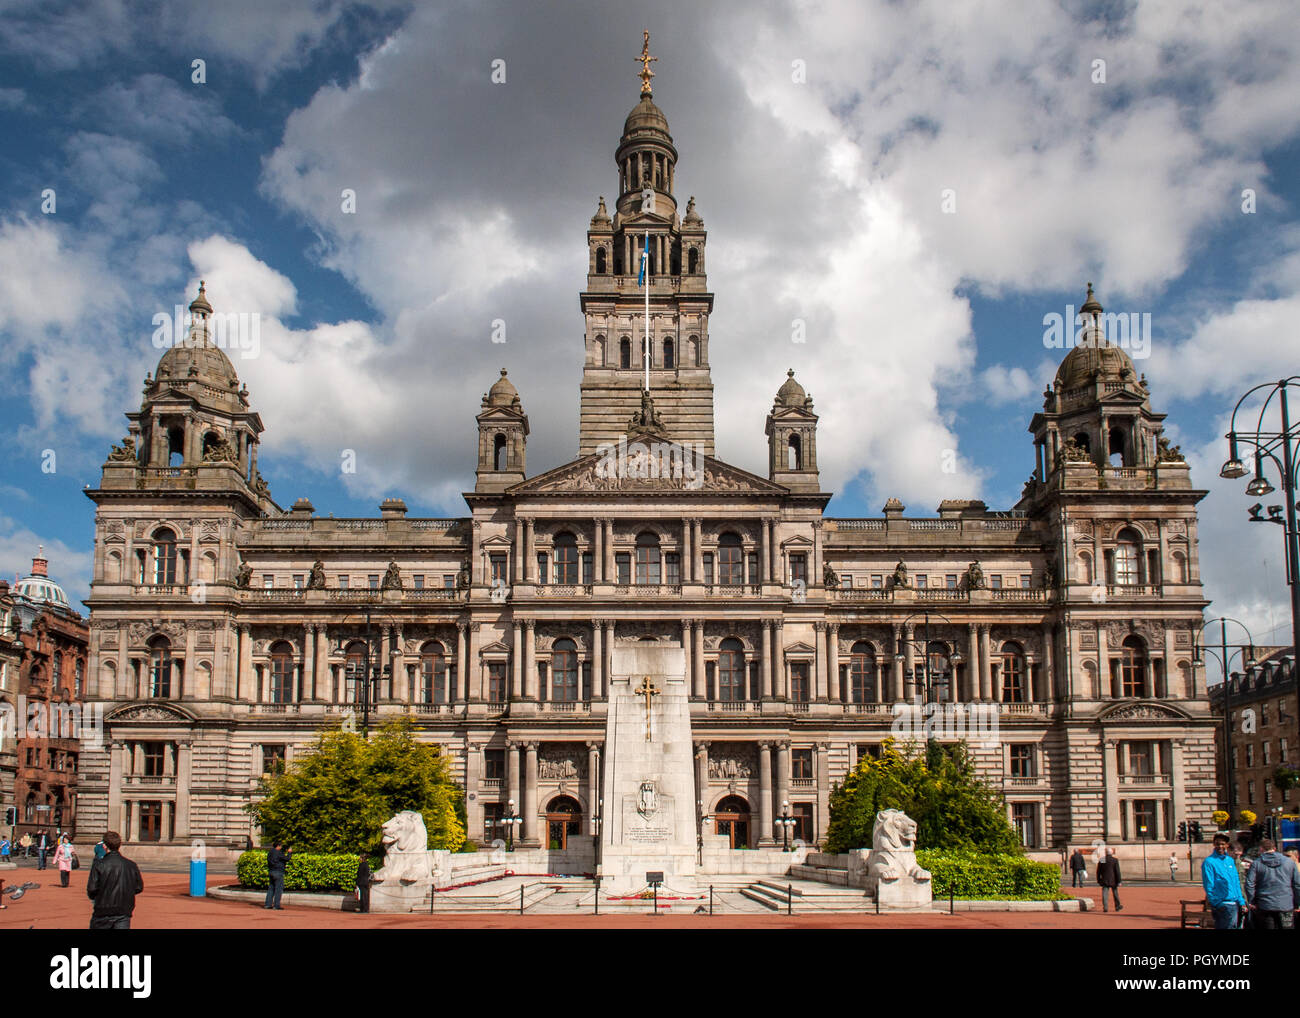 Glasgow, Scotland, UK - May 21, 2011: Sun shines on the Beaux-Arts facade of Glasgow City Chambers in George Square. Stock Photo